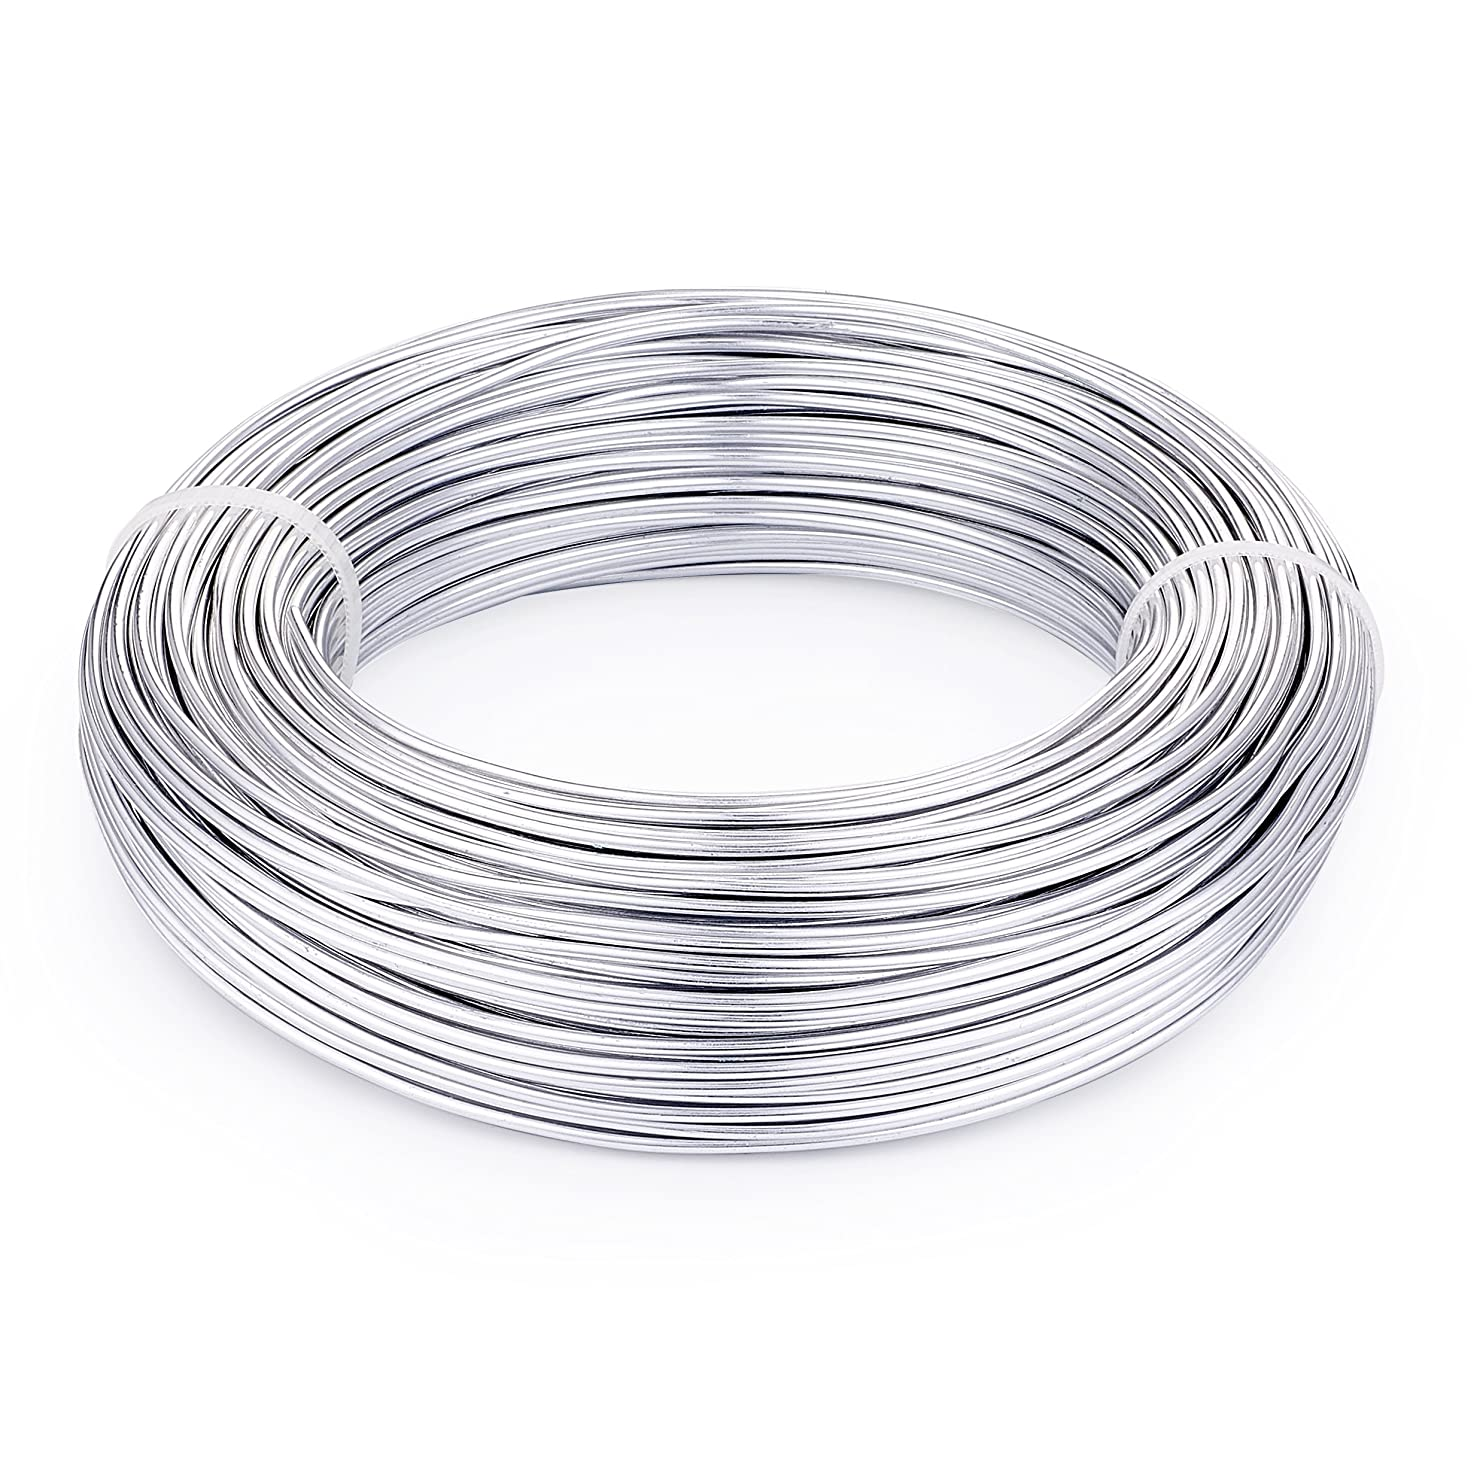 Pandahall 656 Feet Silver Aluminum Craft Wire 20 Gauge Flexible Metal Wire for Jewelry Making